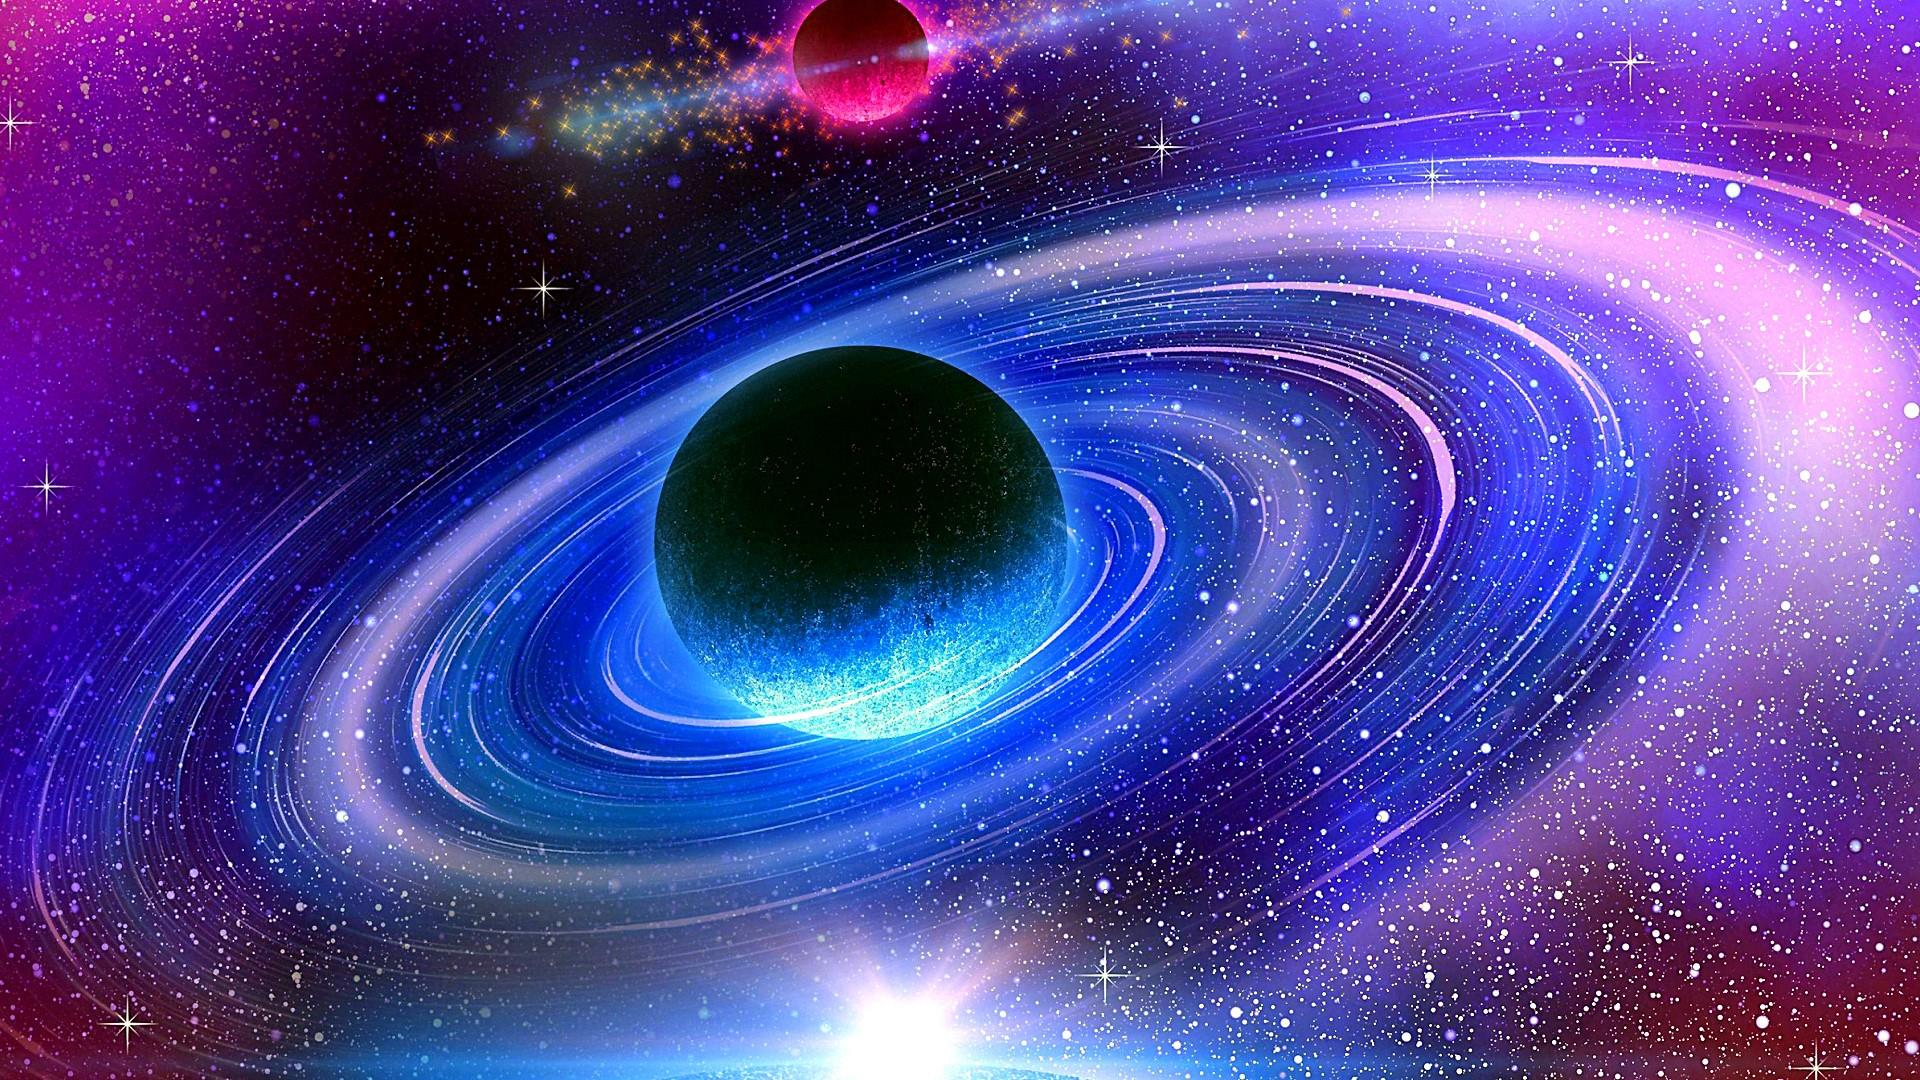 Wallpaper of planet space star galaxy background hd image - Galaxy and planets ...